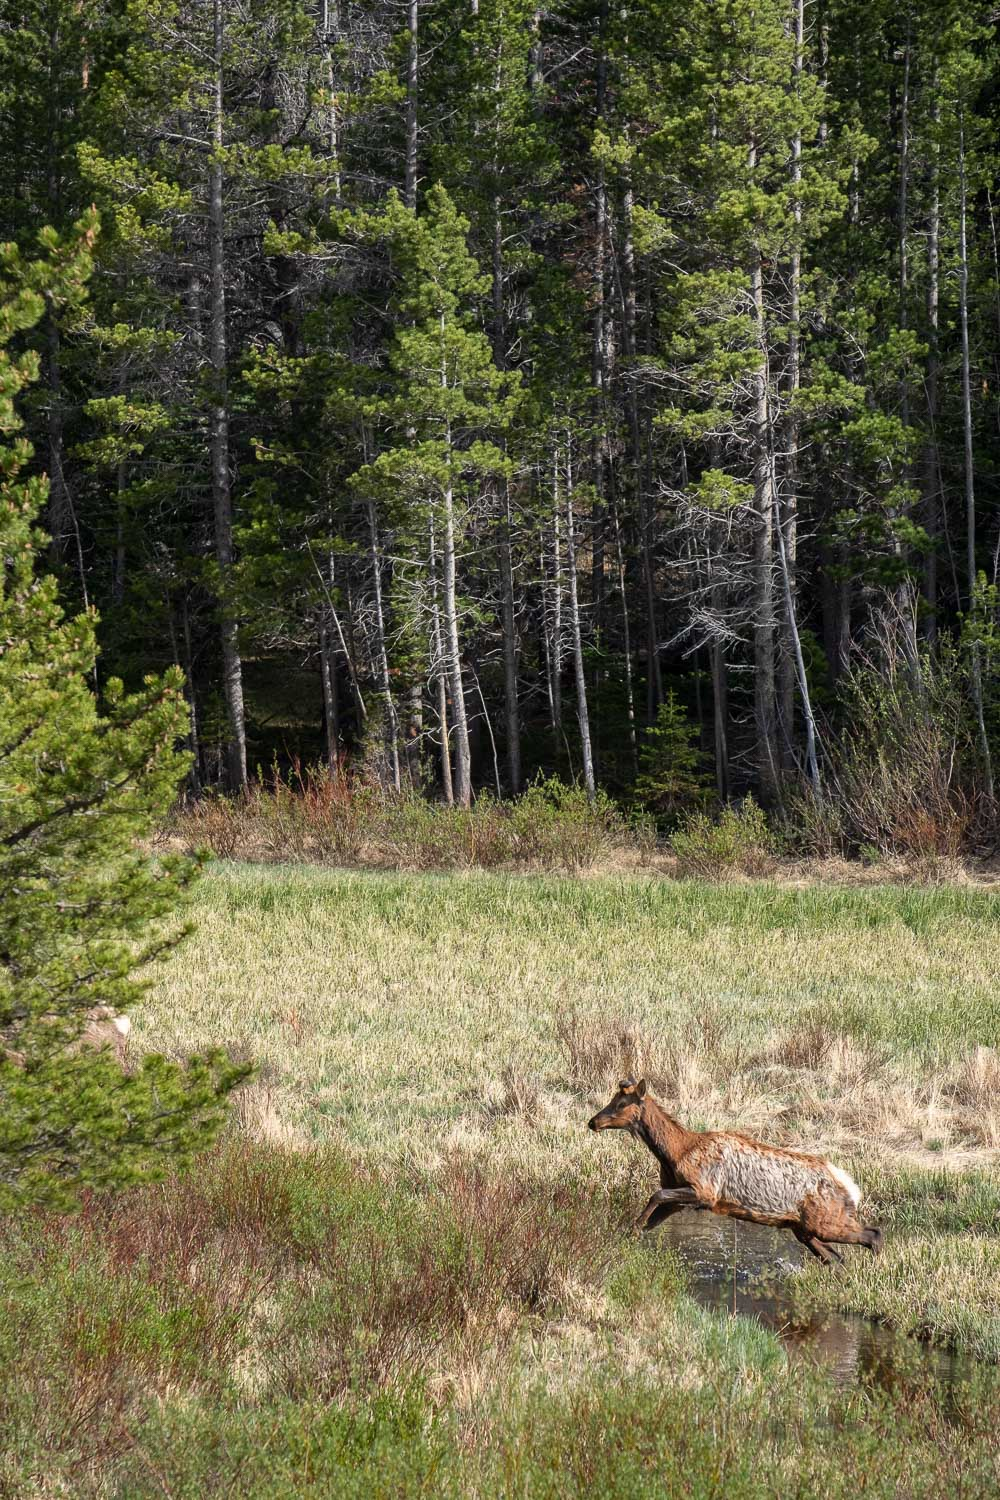 A deer jumping over a stream in RMNP